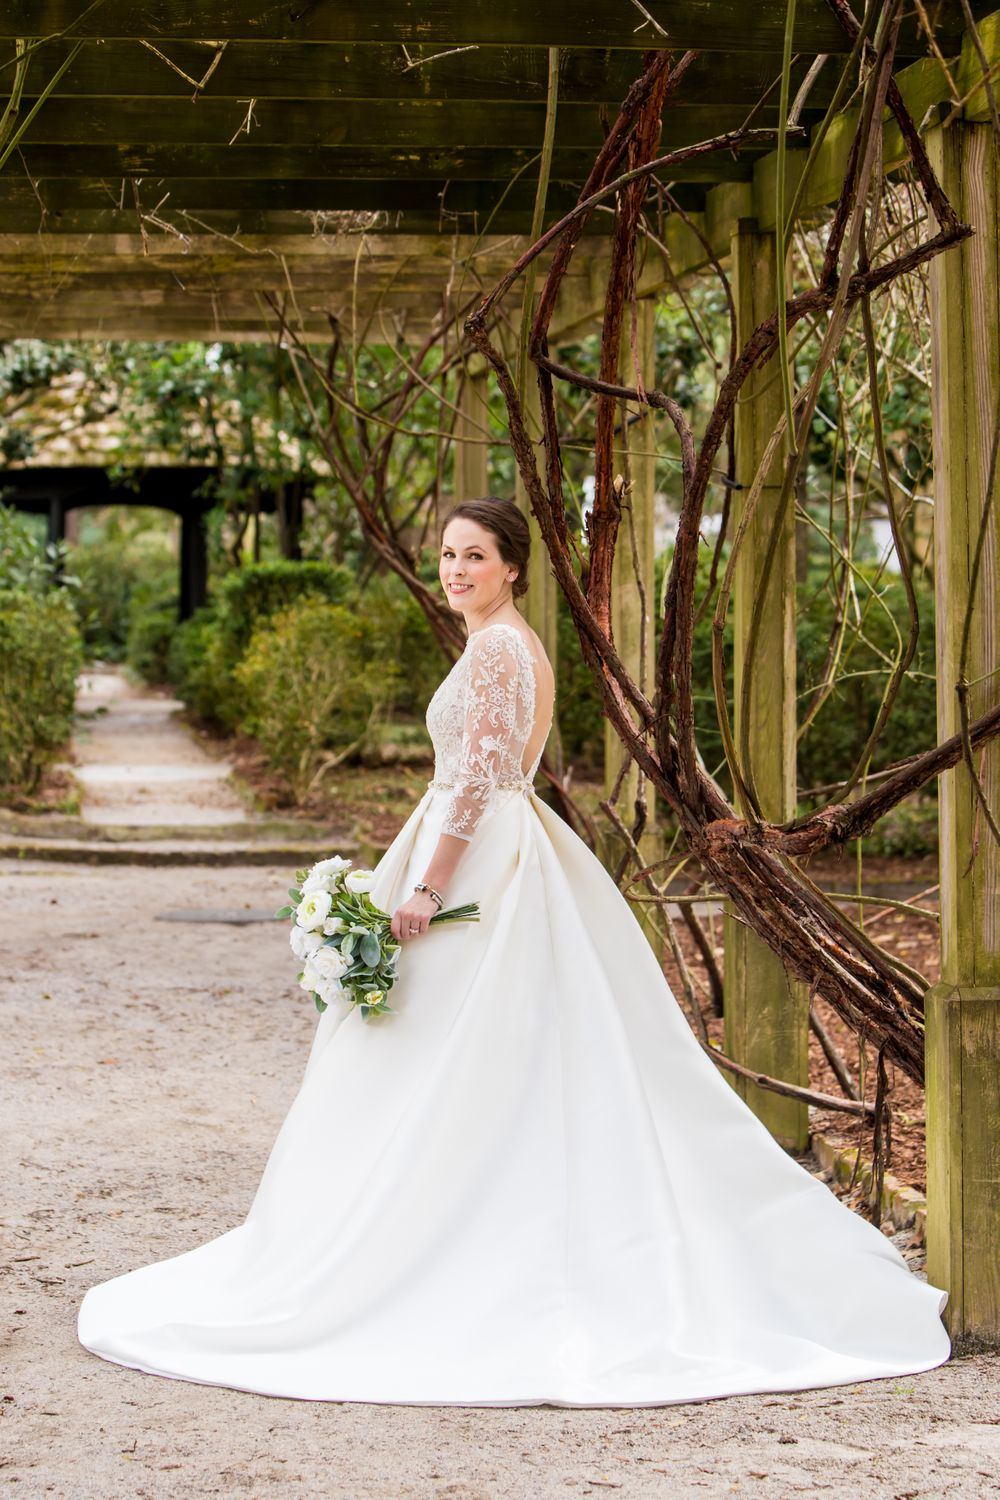 Ferris' bridal portrait at the Lace House on the grounds of the South Carolina Governor's Mansion in Columbia, SC